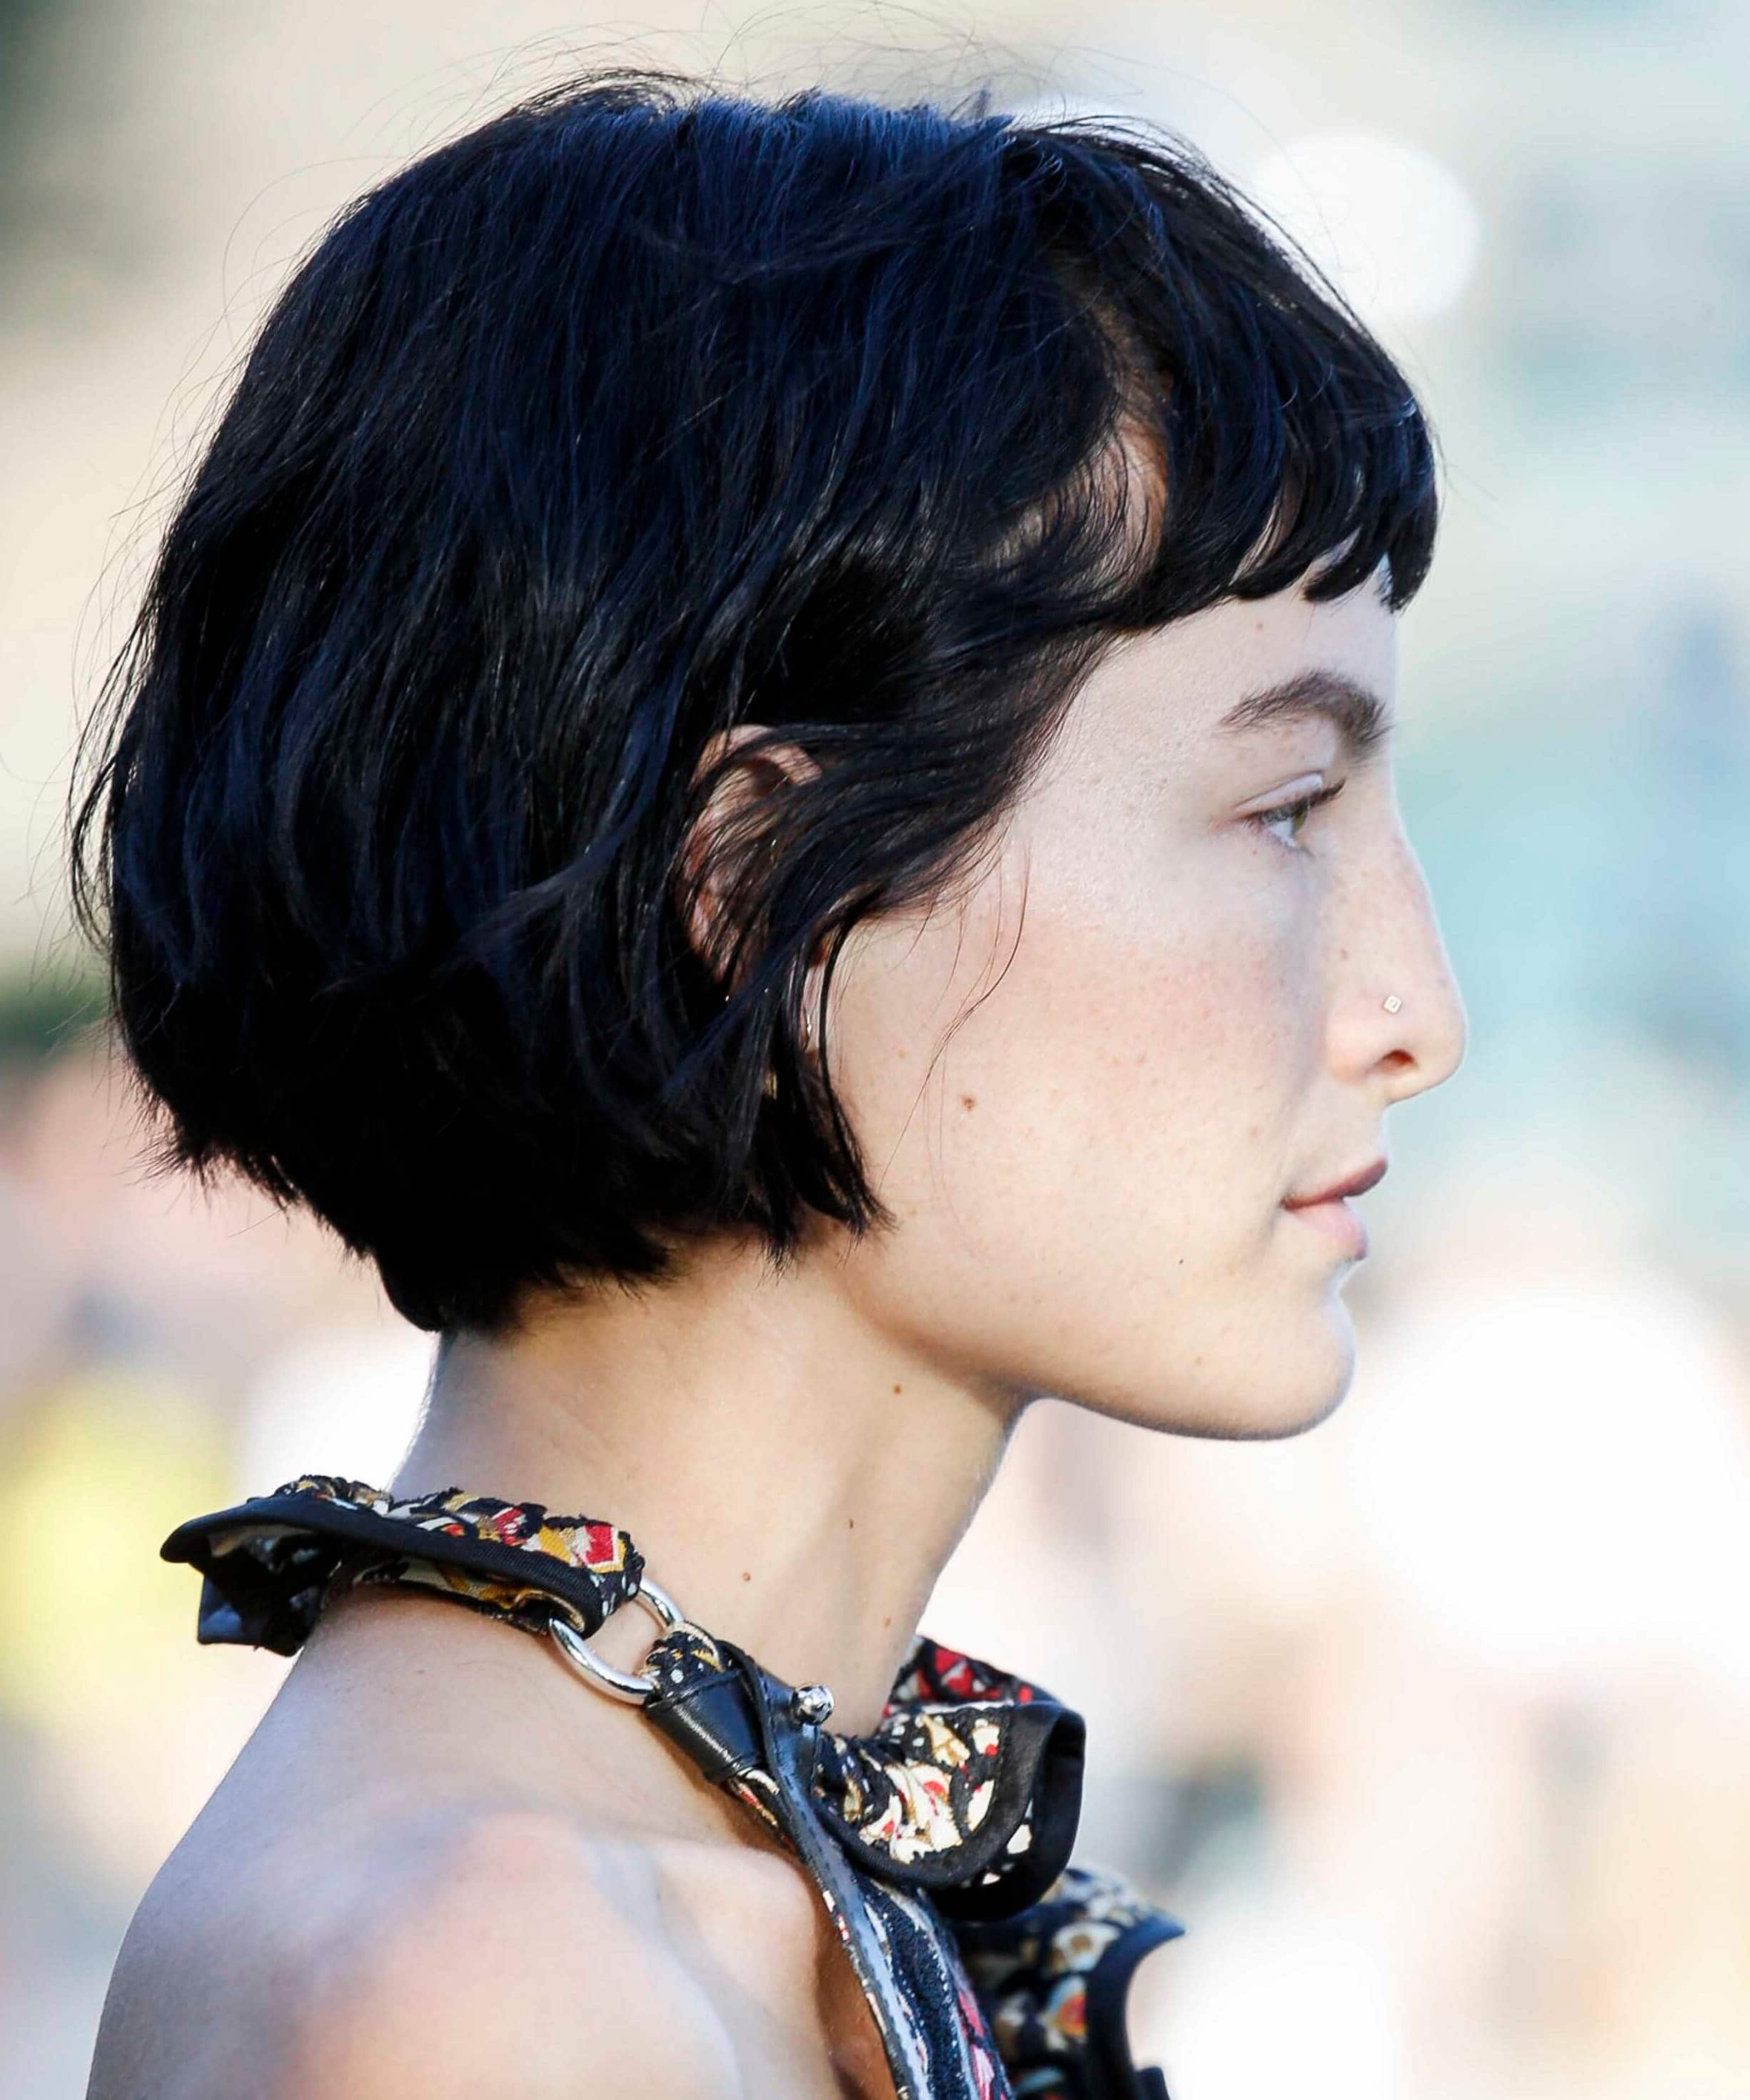 5 Cool Vintage Hairstyles For Short Hair To Try Now Pertaining To 20S Short Hairstyles (View 24 of 25)